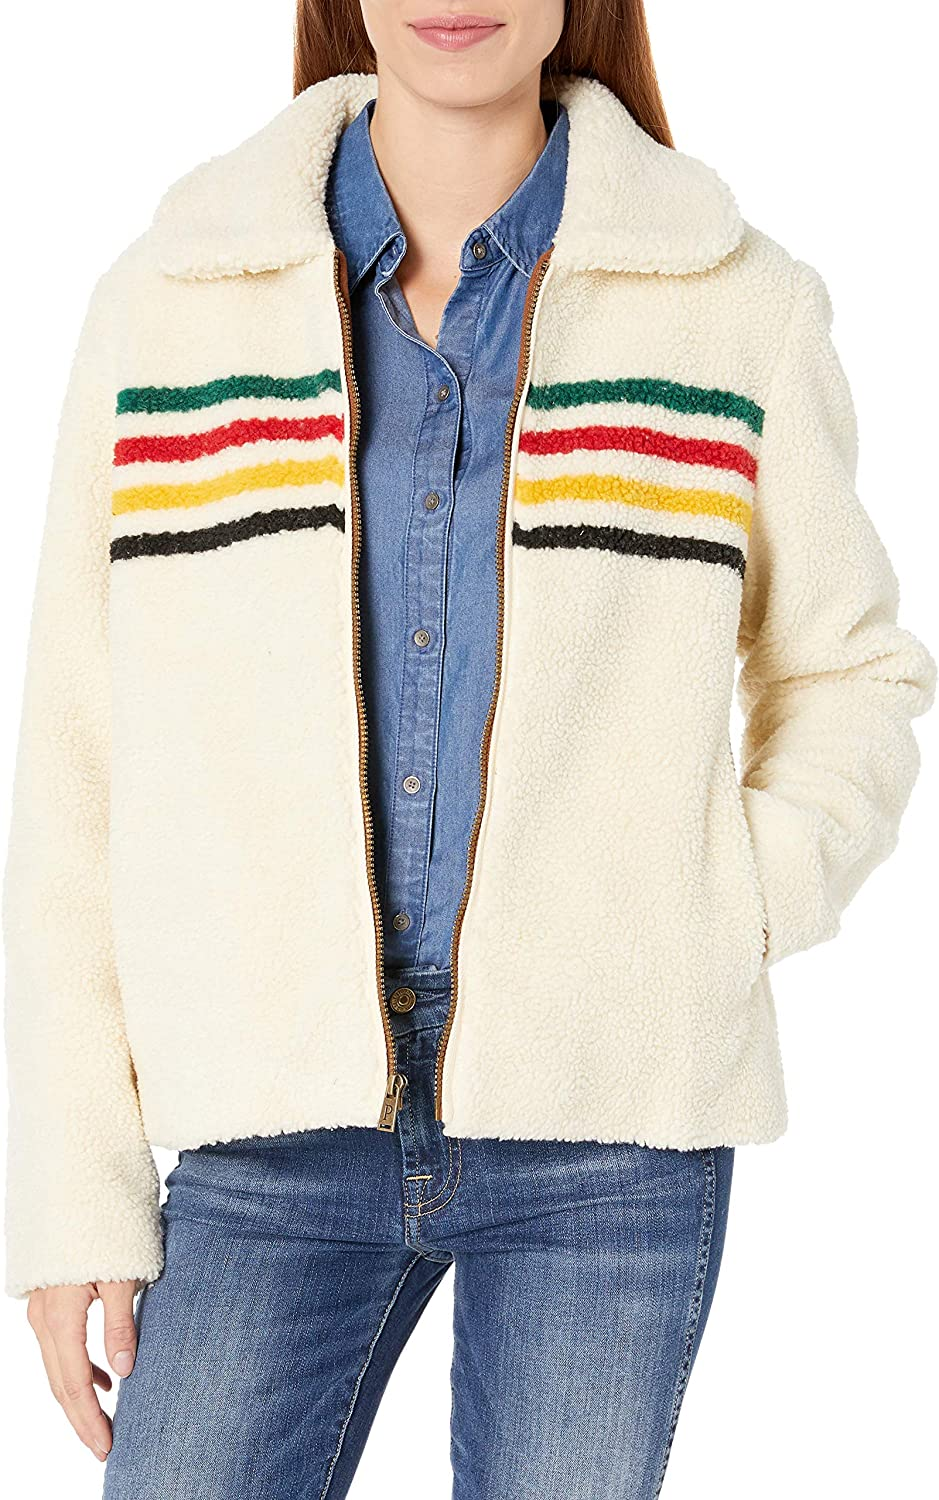 70s Outfits – 70s Style Ideas for Women Pendleton Outerwear womens Glacier Valley $155.00 AT vintagedancer.com